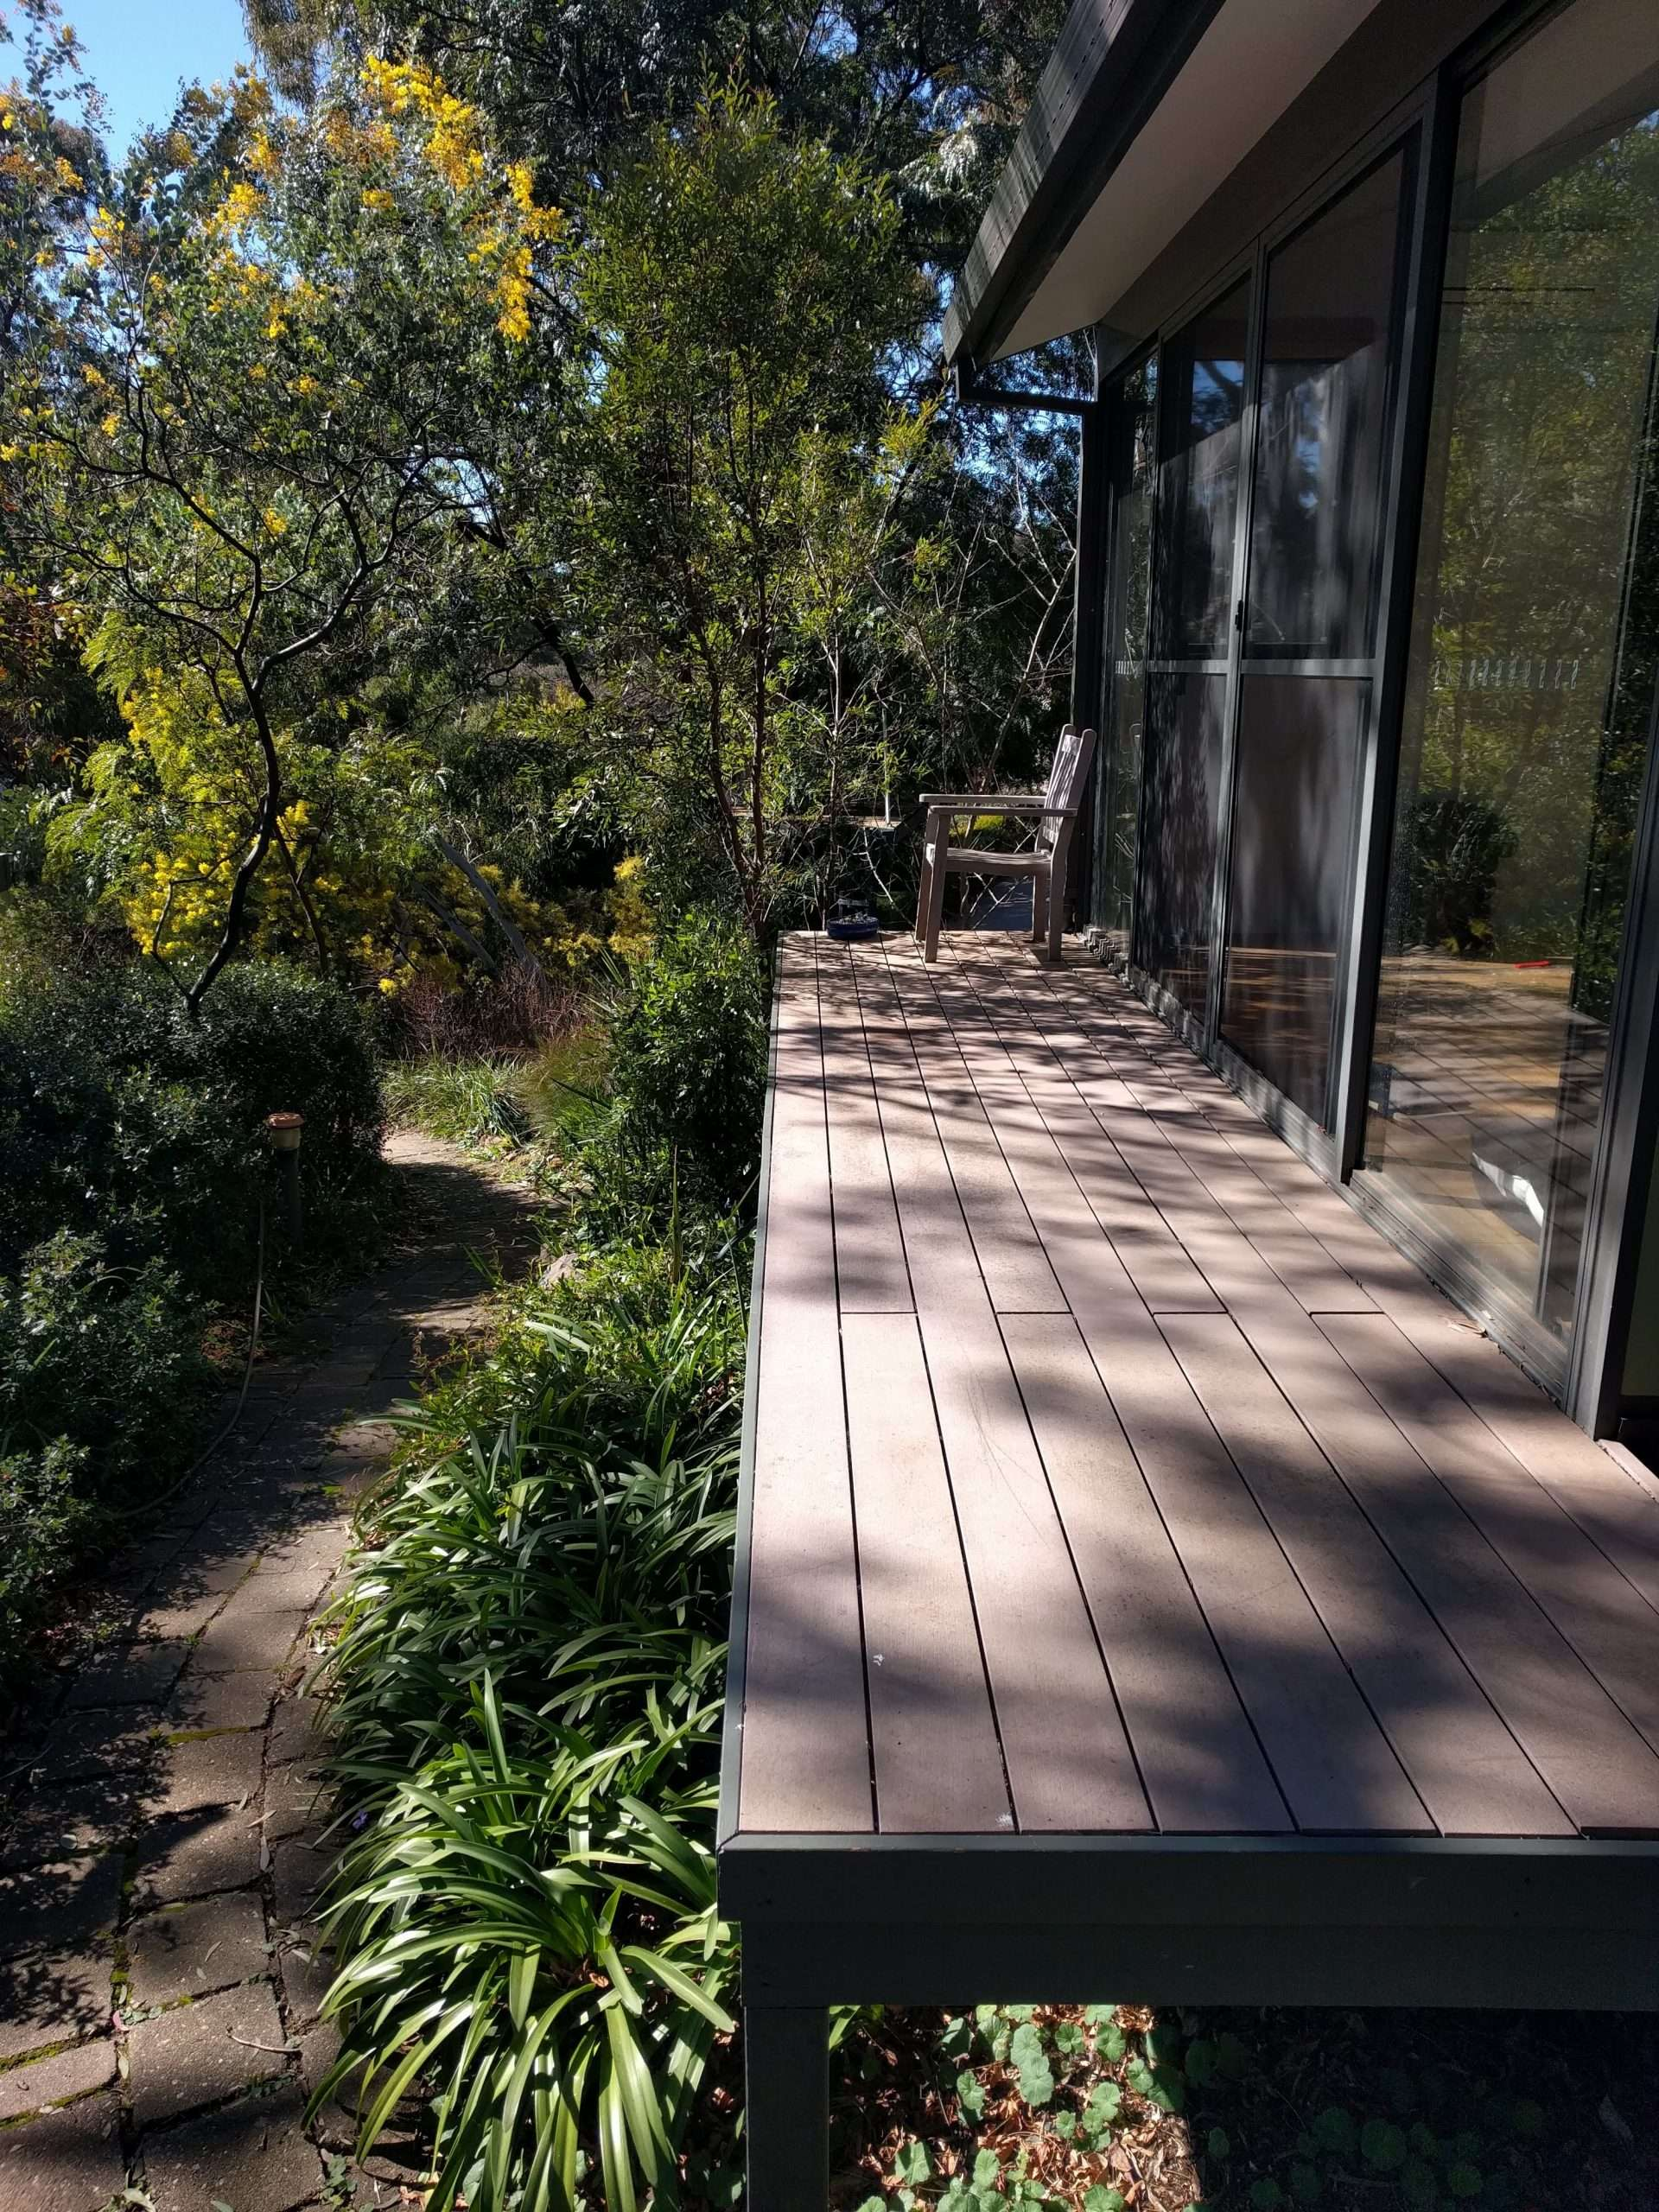 The front of the zendo. On the left of the image is the winding path up from the street, in the middle is the zendo deck and on the right you can see the front of the zendo which is all glass. The sun is shining and the garden is lush and green.